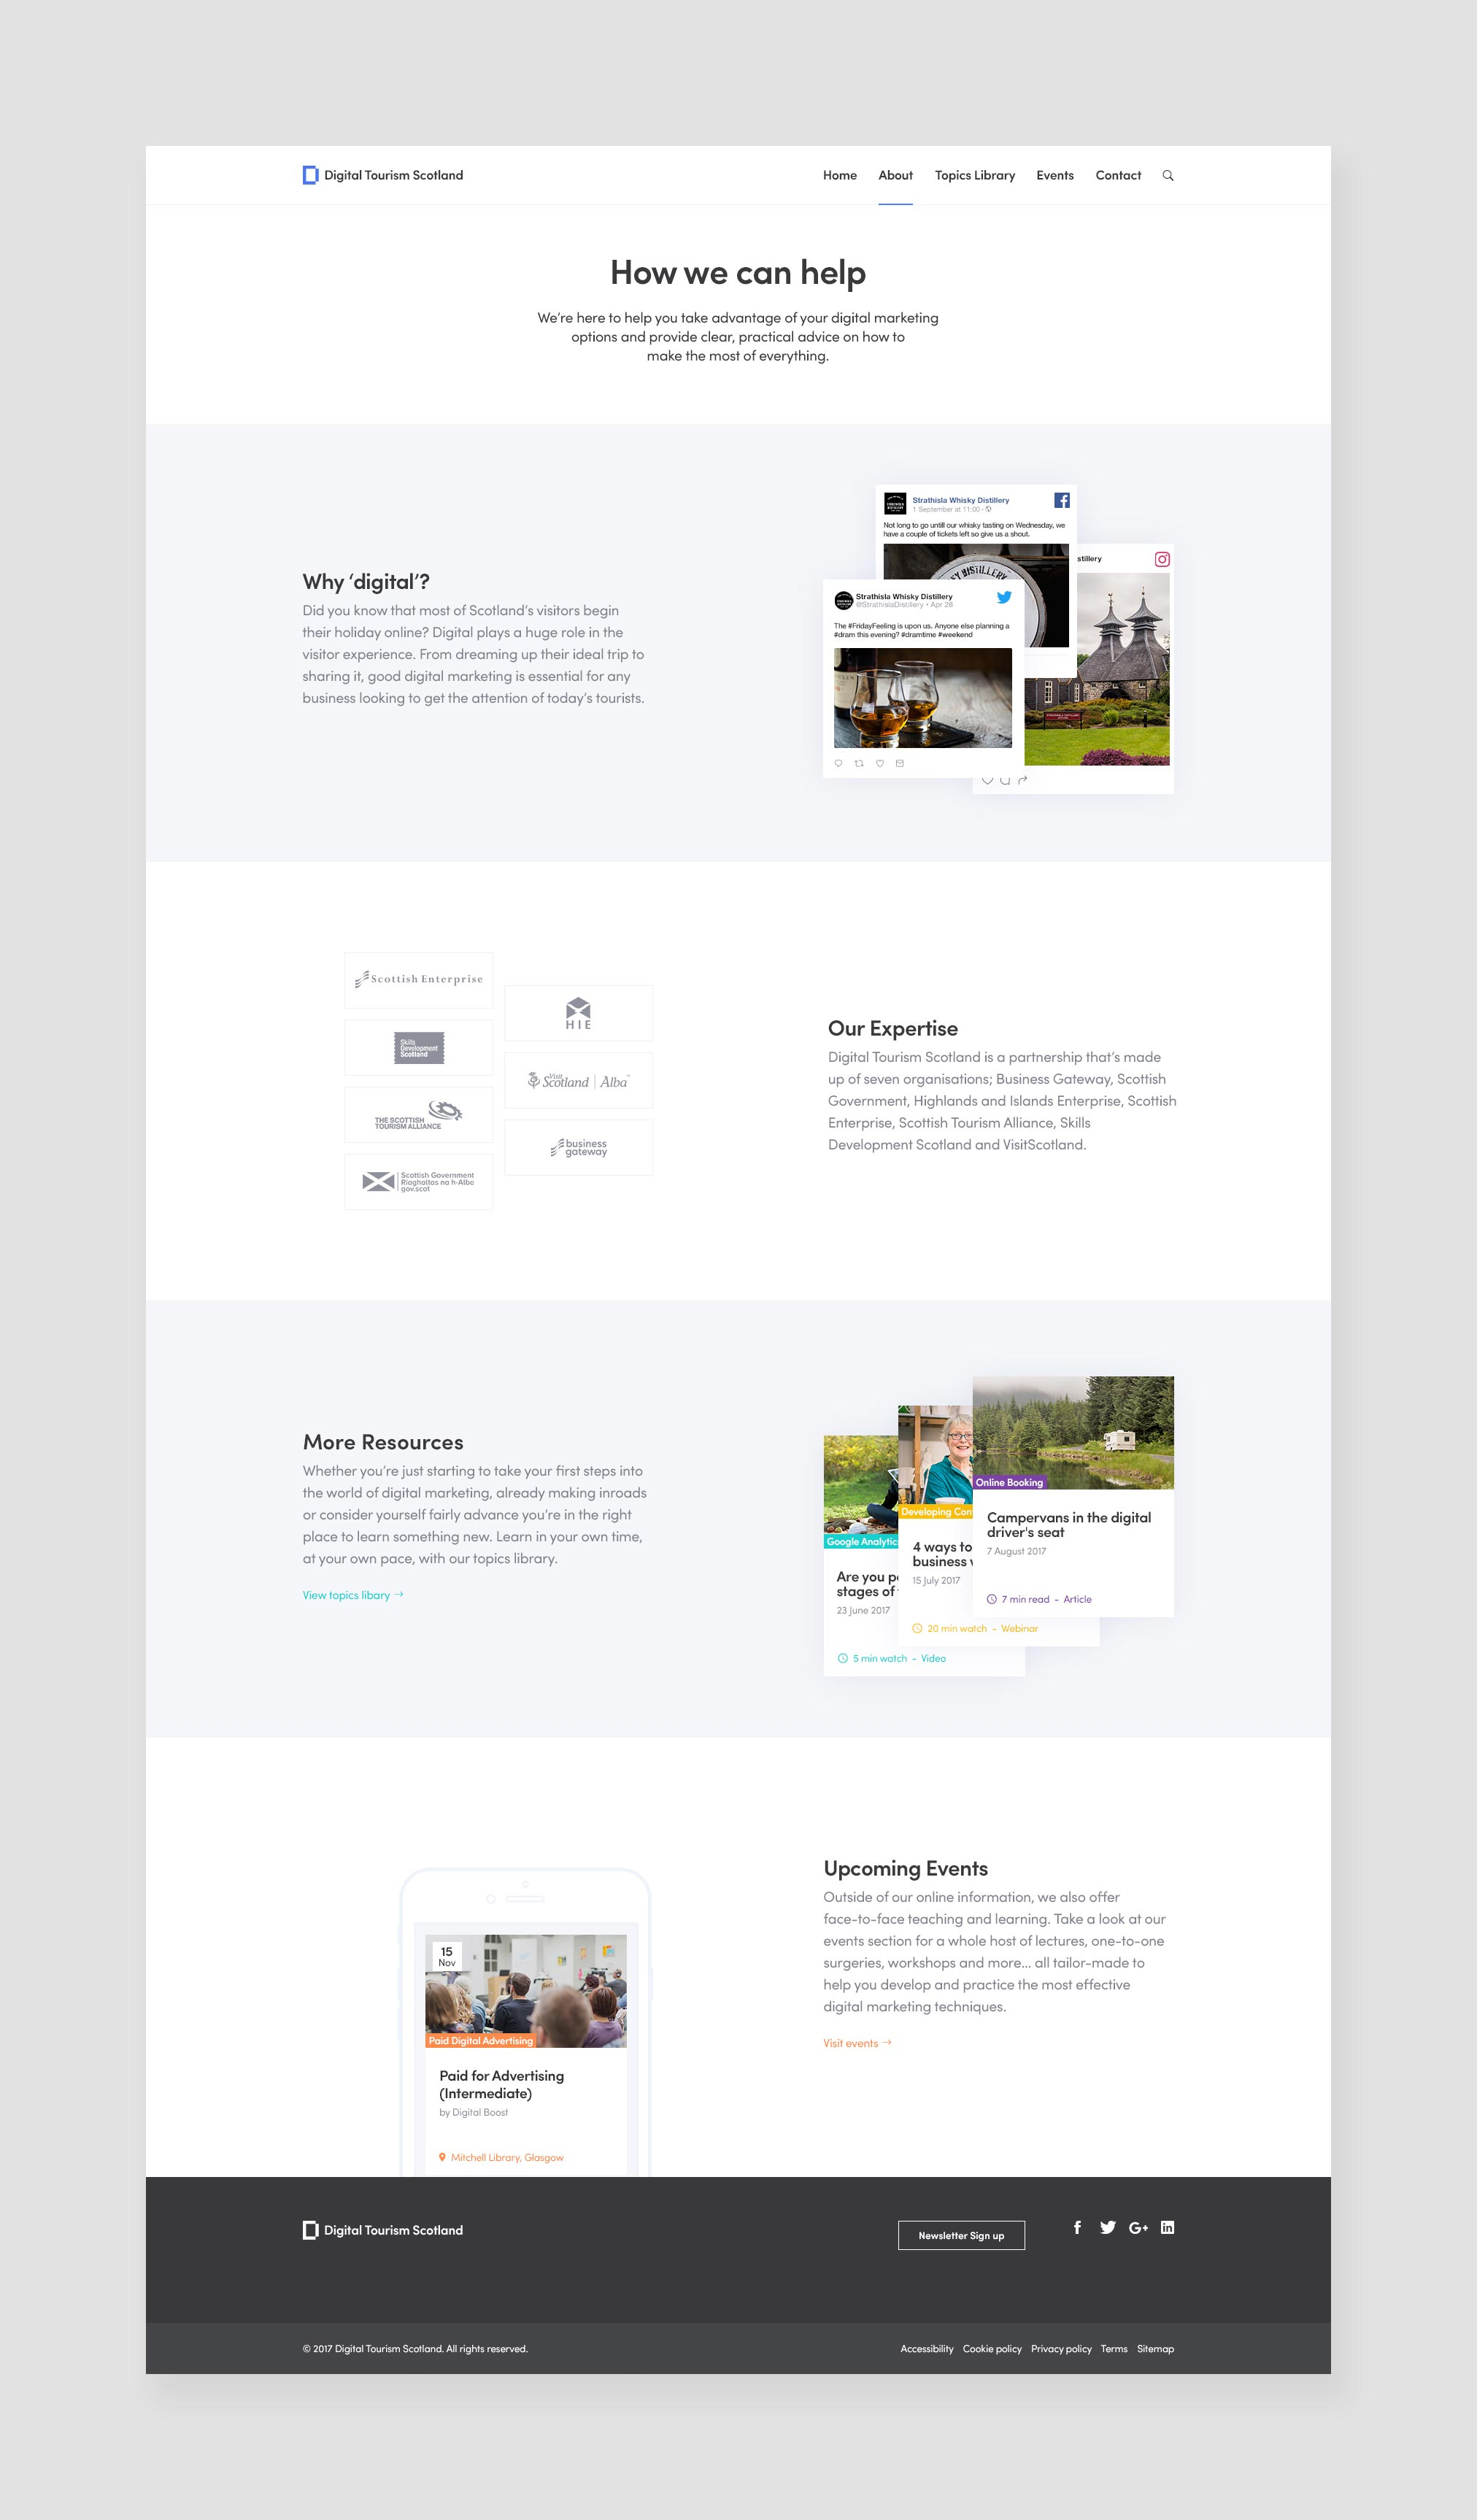 dts-mockup-website-about